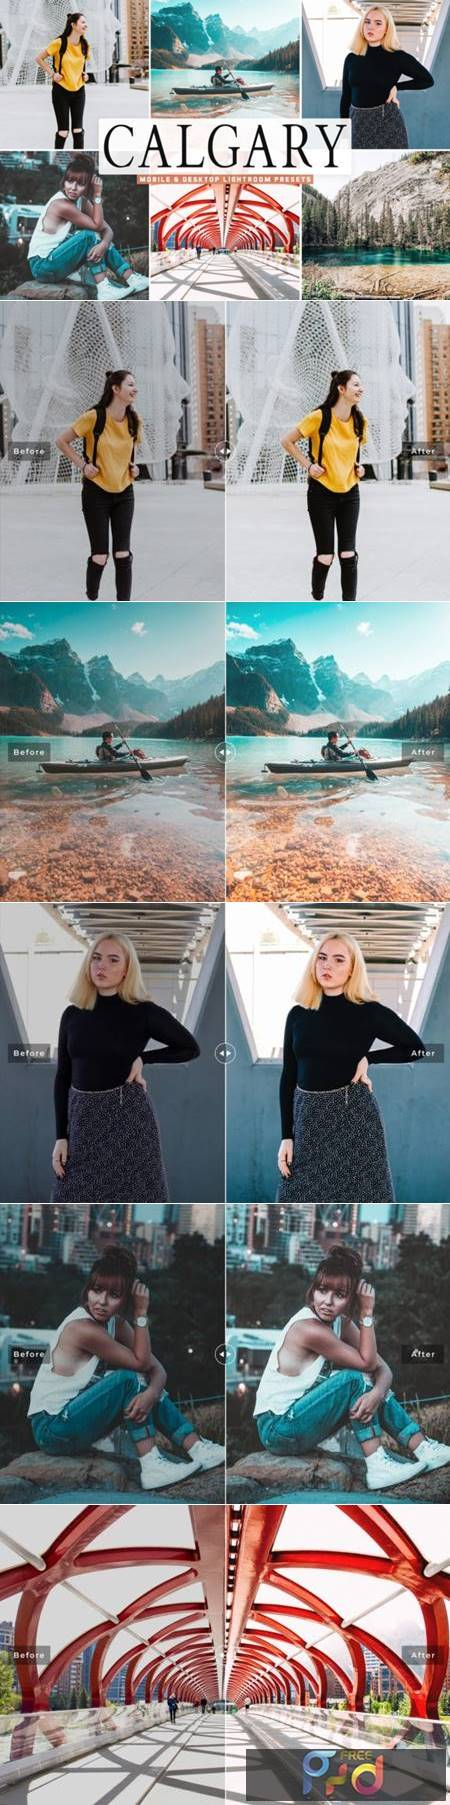 Calgary Pro Lightroom Presets Pack 4220811 1